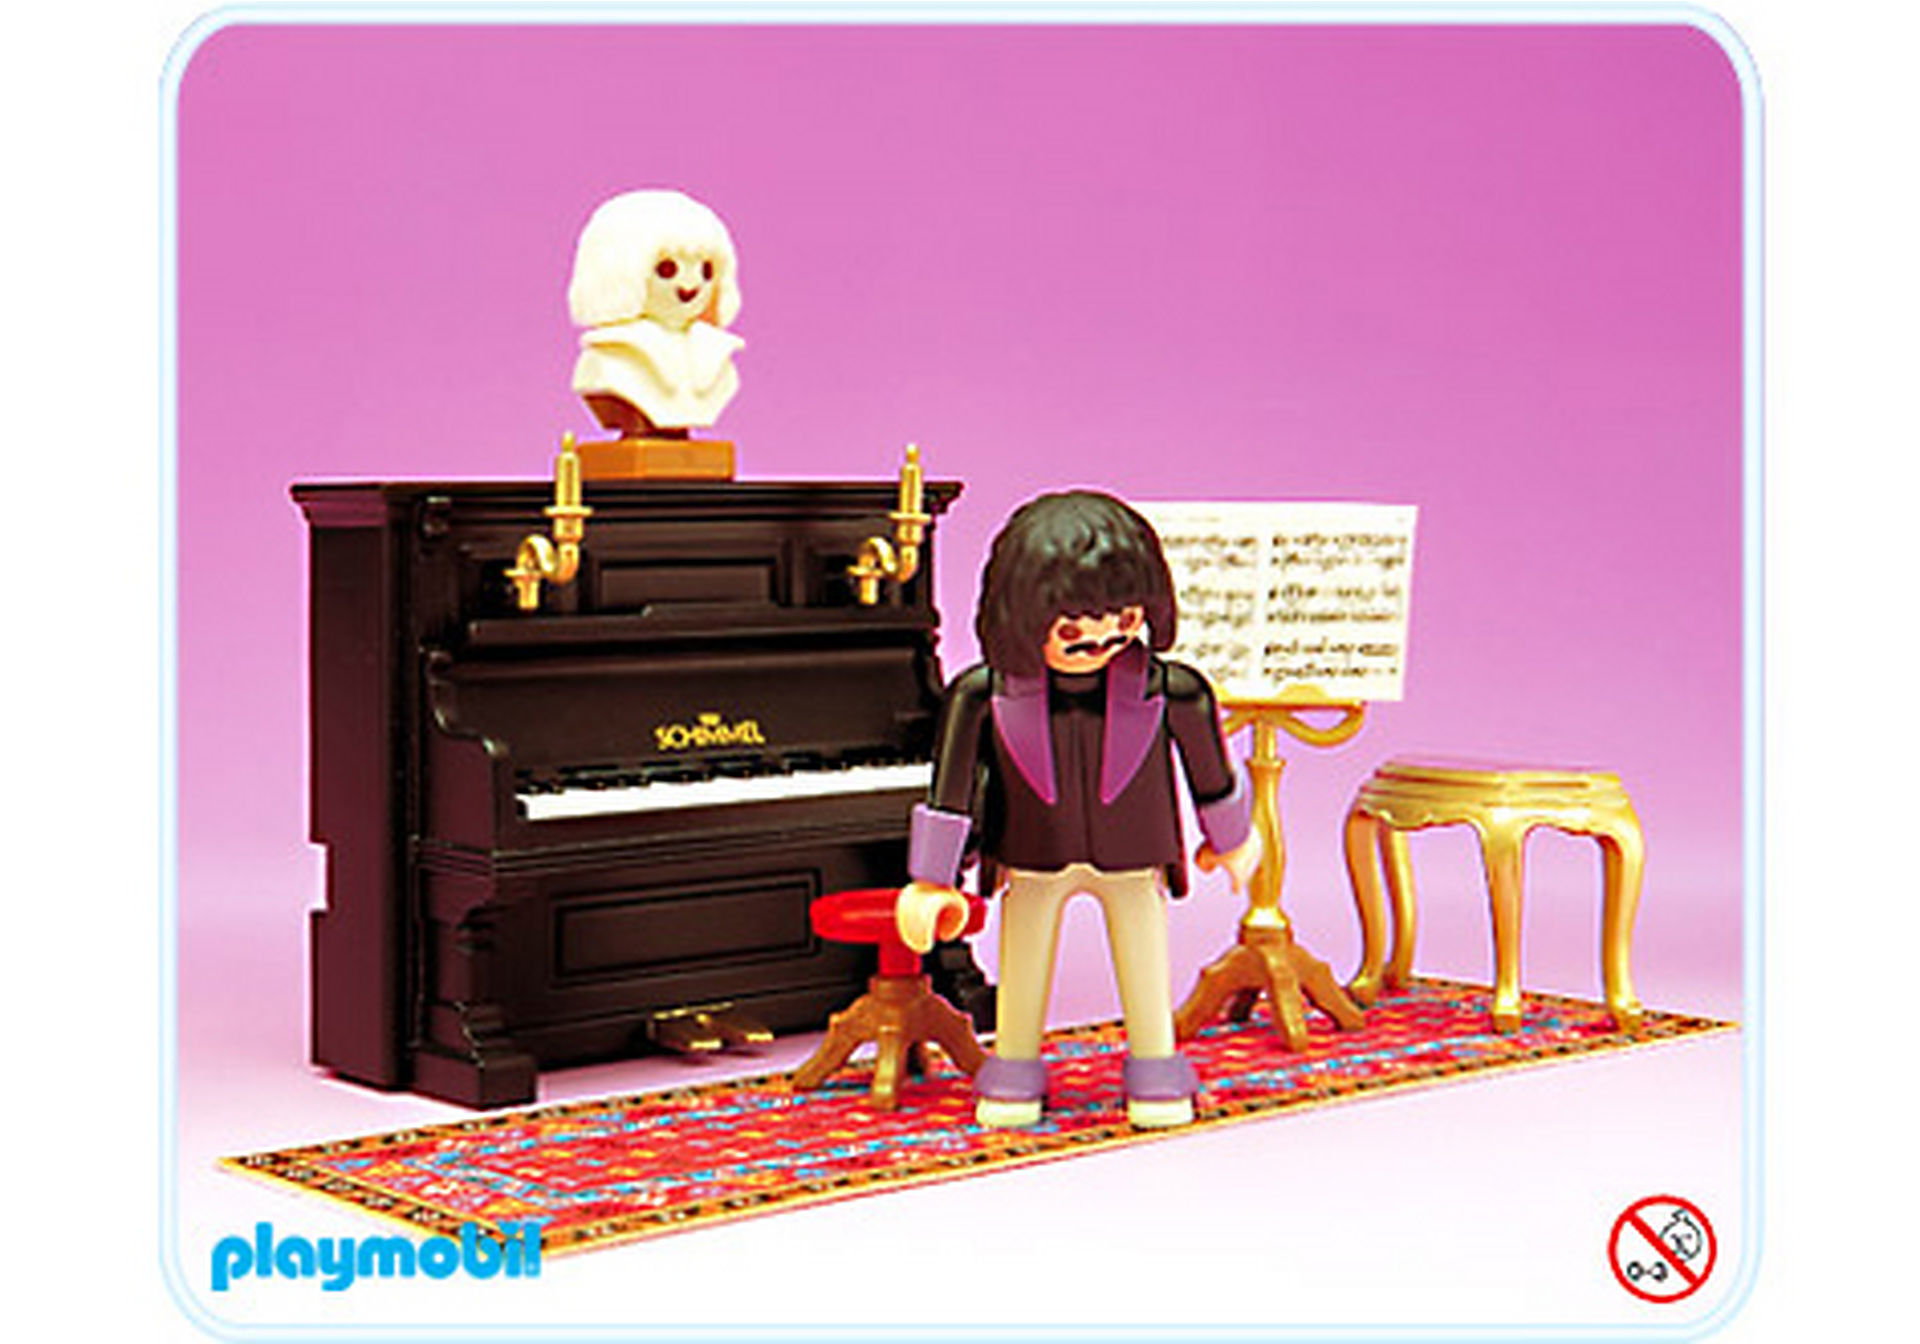 http://media.playmobil.com/i/playmobil/5551-A_product_detail/Salon de musique